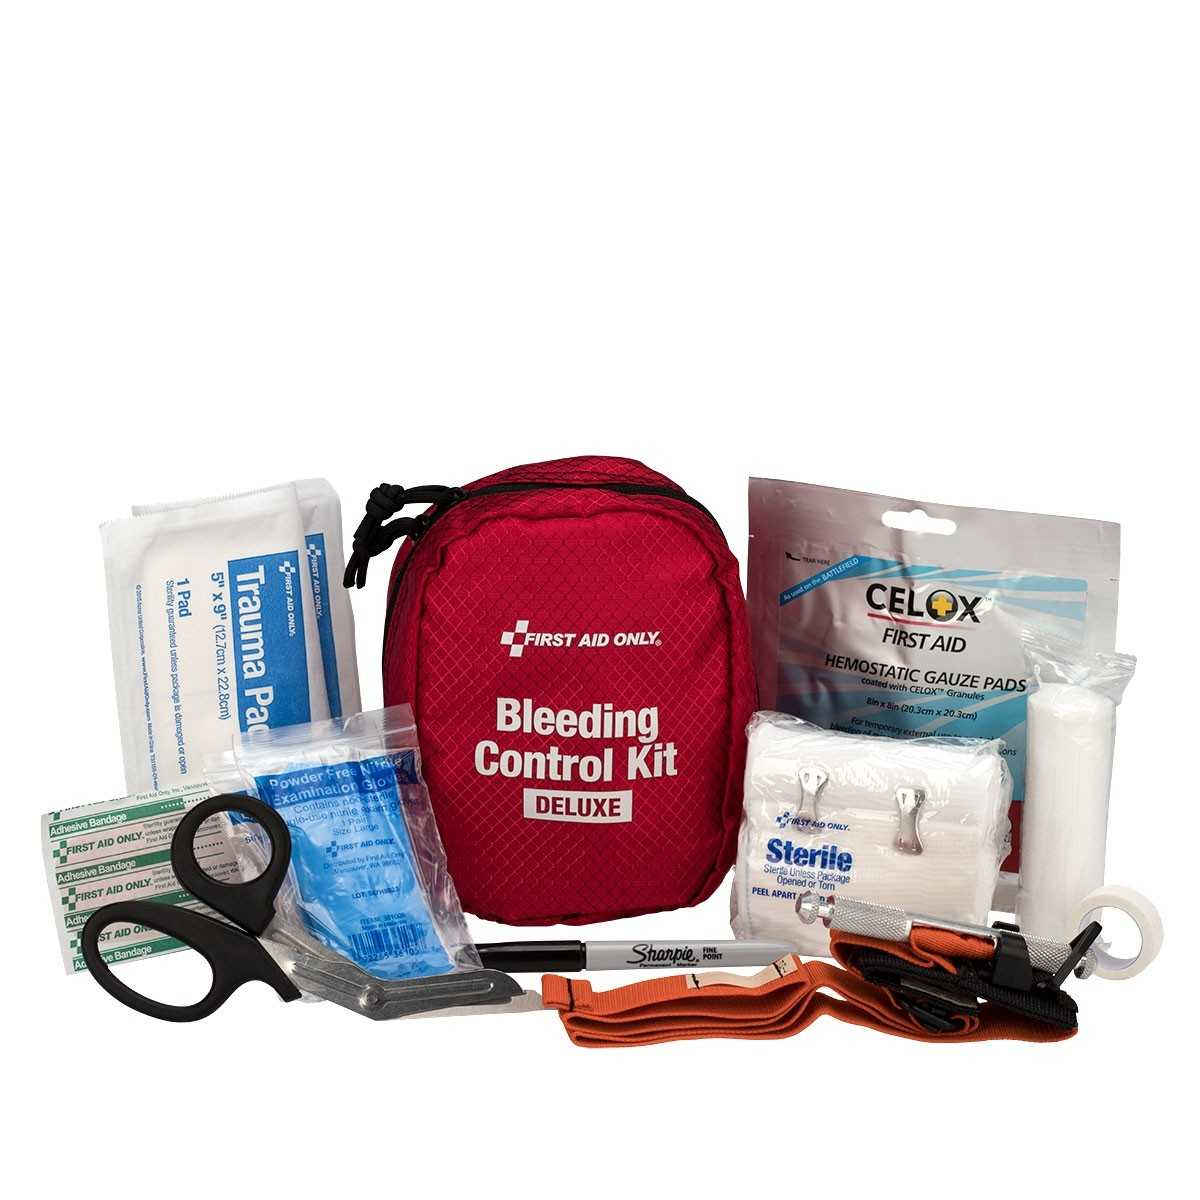 First Aid Only Deluxe Bleeding Control Kit